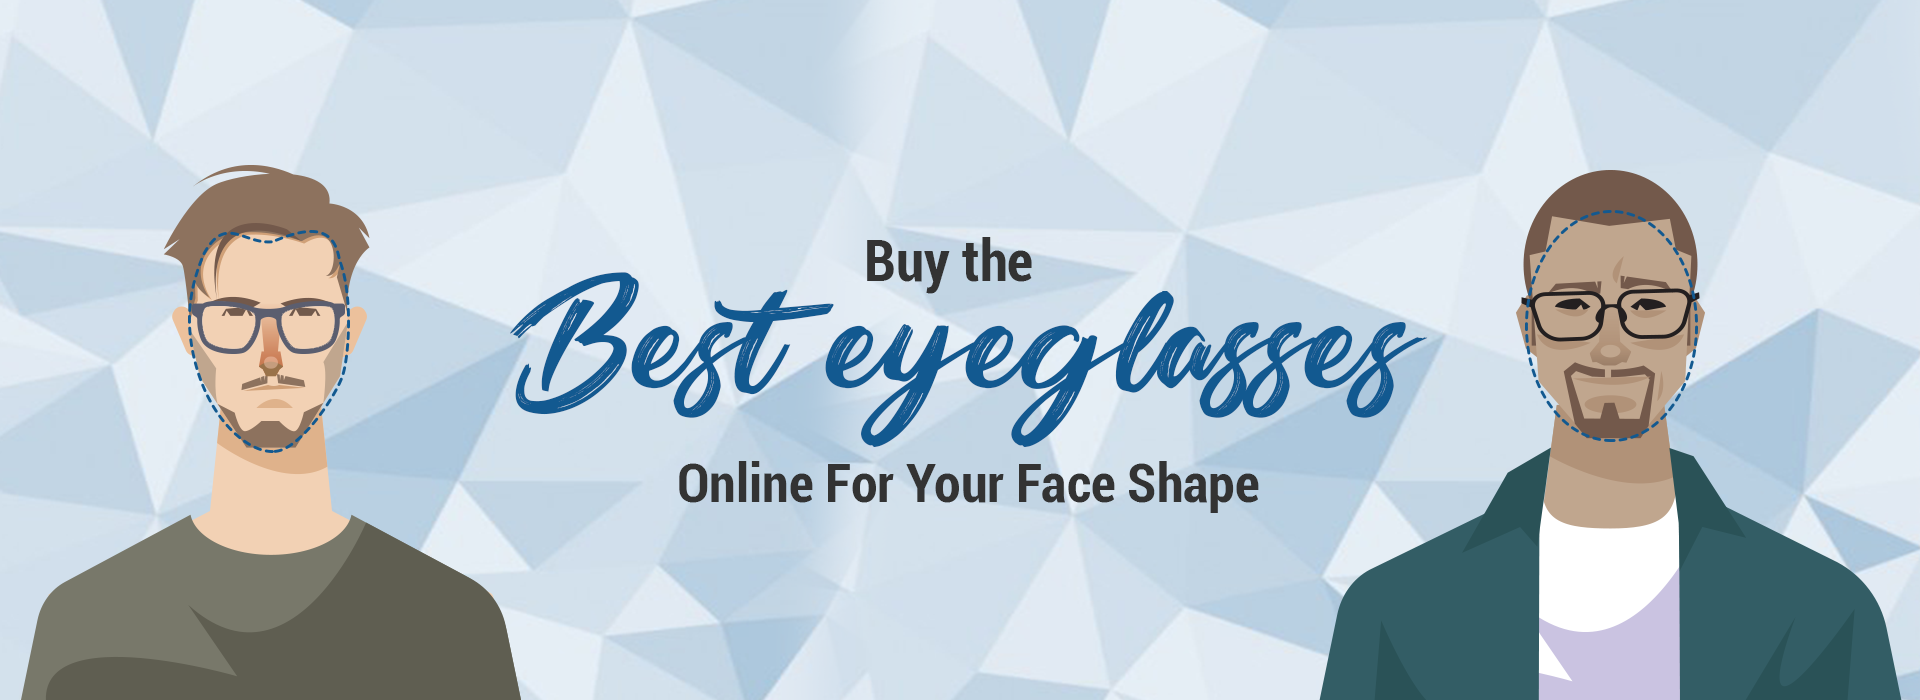 Buy The Best Eyeglasses Online For Your Face Shape